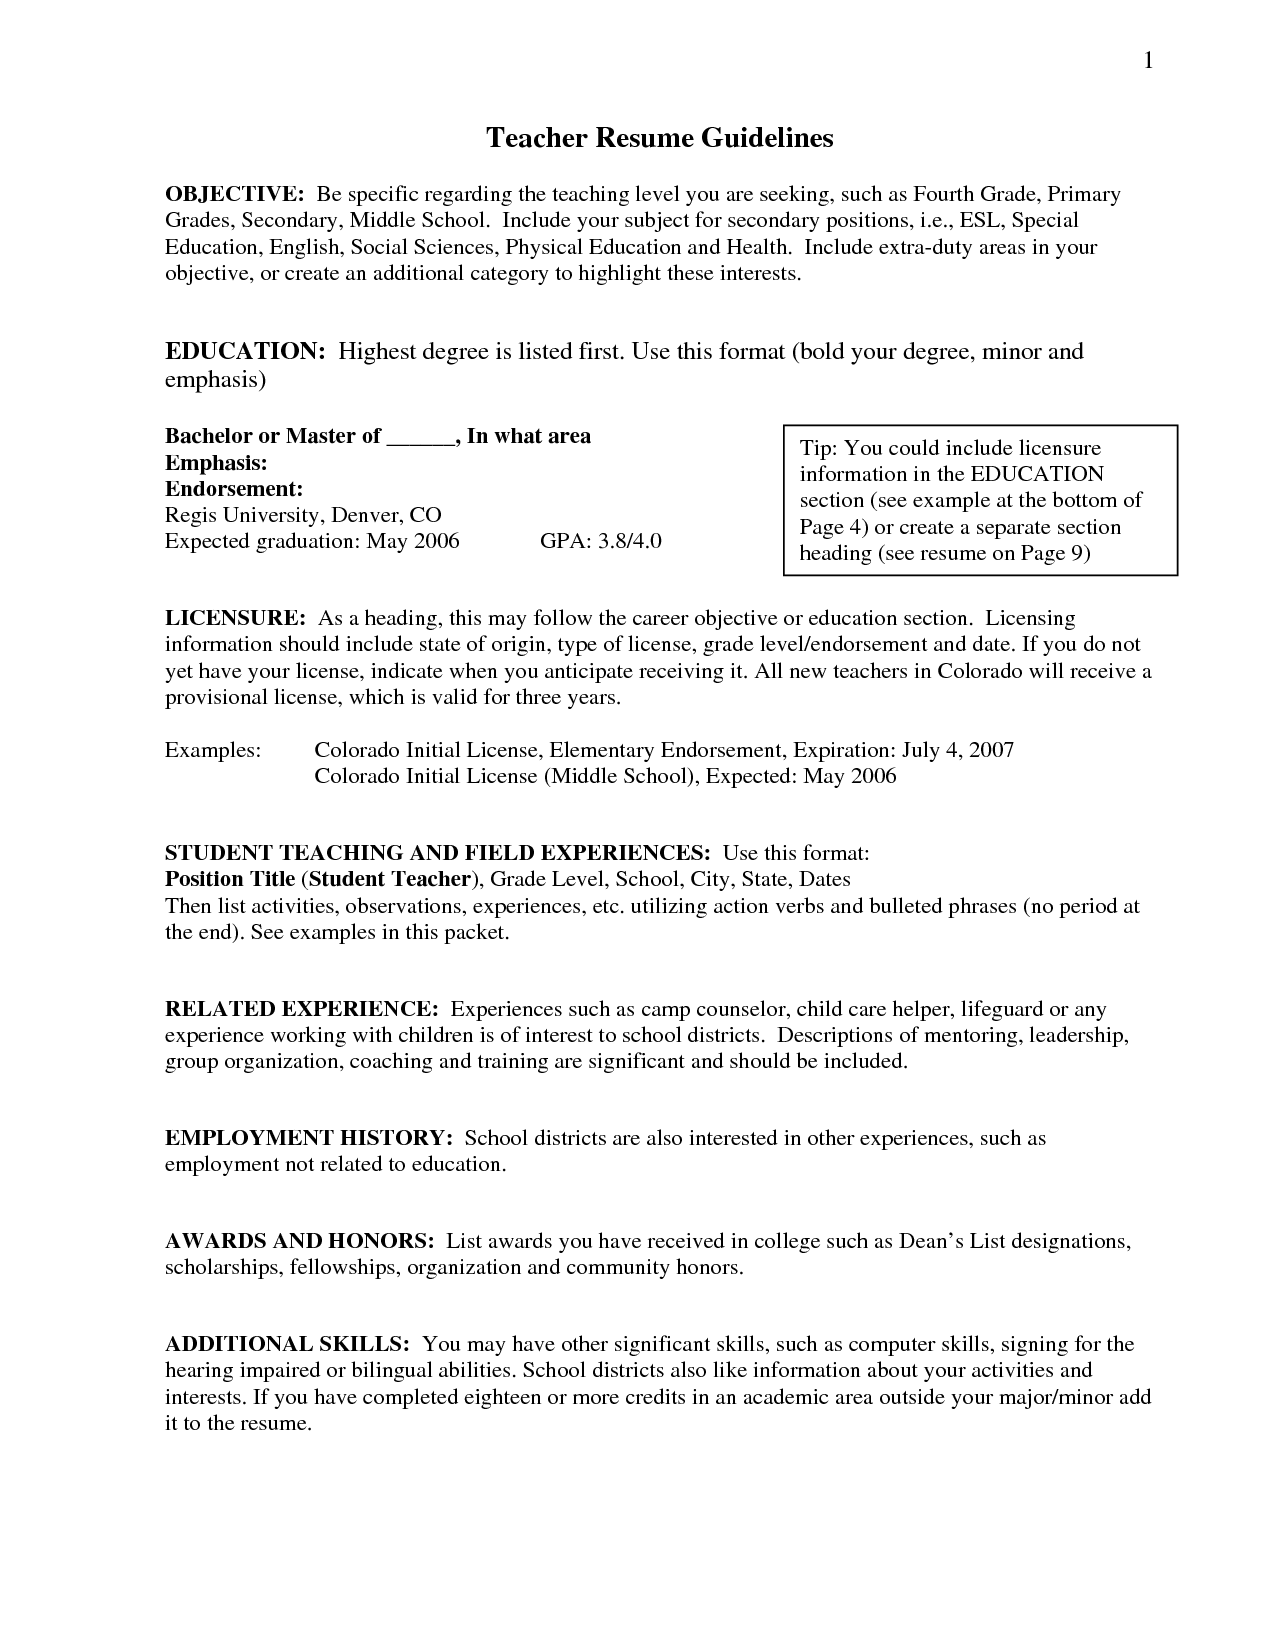 Resume Objective Pinjobresume On Resume Career Termplate Free  Pinterest